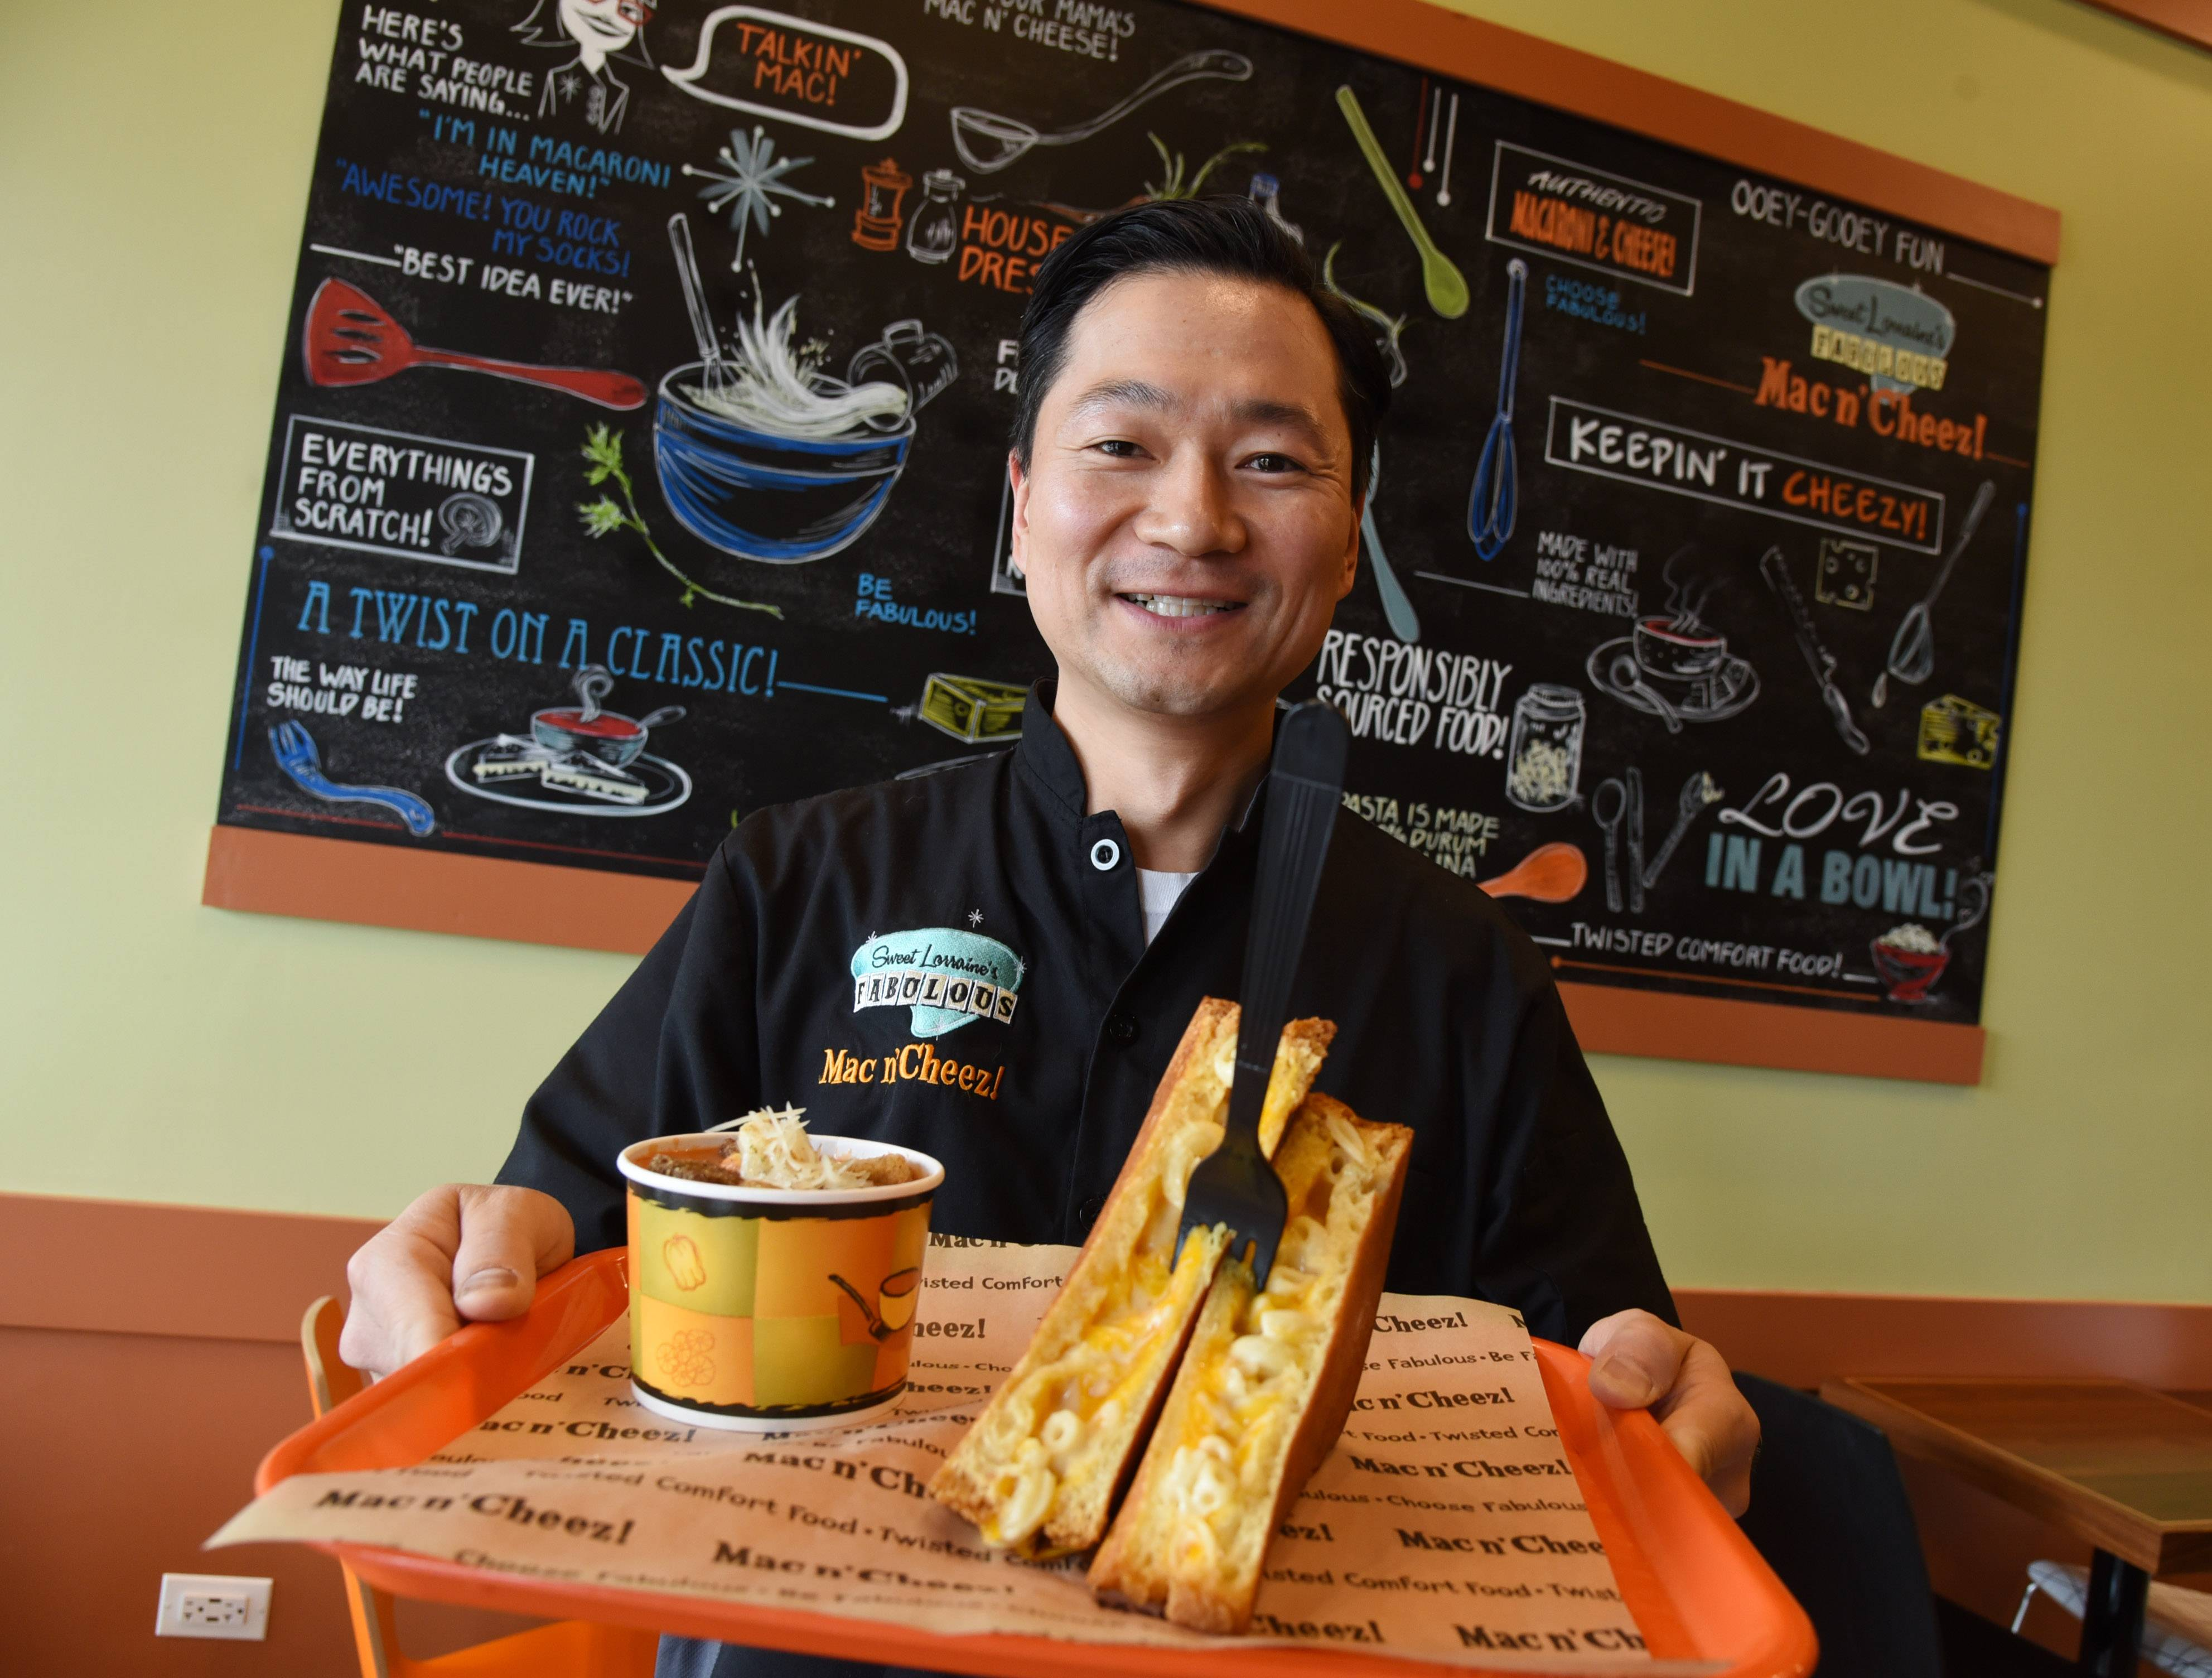 Sweet Lorraine's Fabulous Mac n' Cheez! owner Jeff Huh shows off a comfort food classic: cream of tomato soup and the Twisted Classic grilled cheese sandwich.